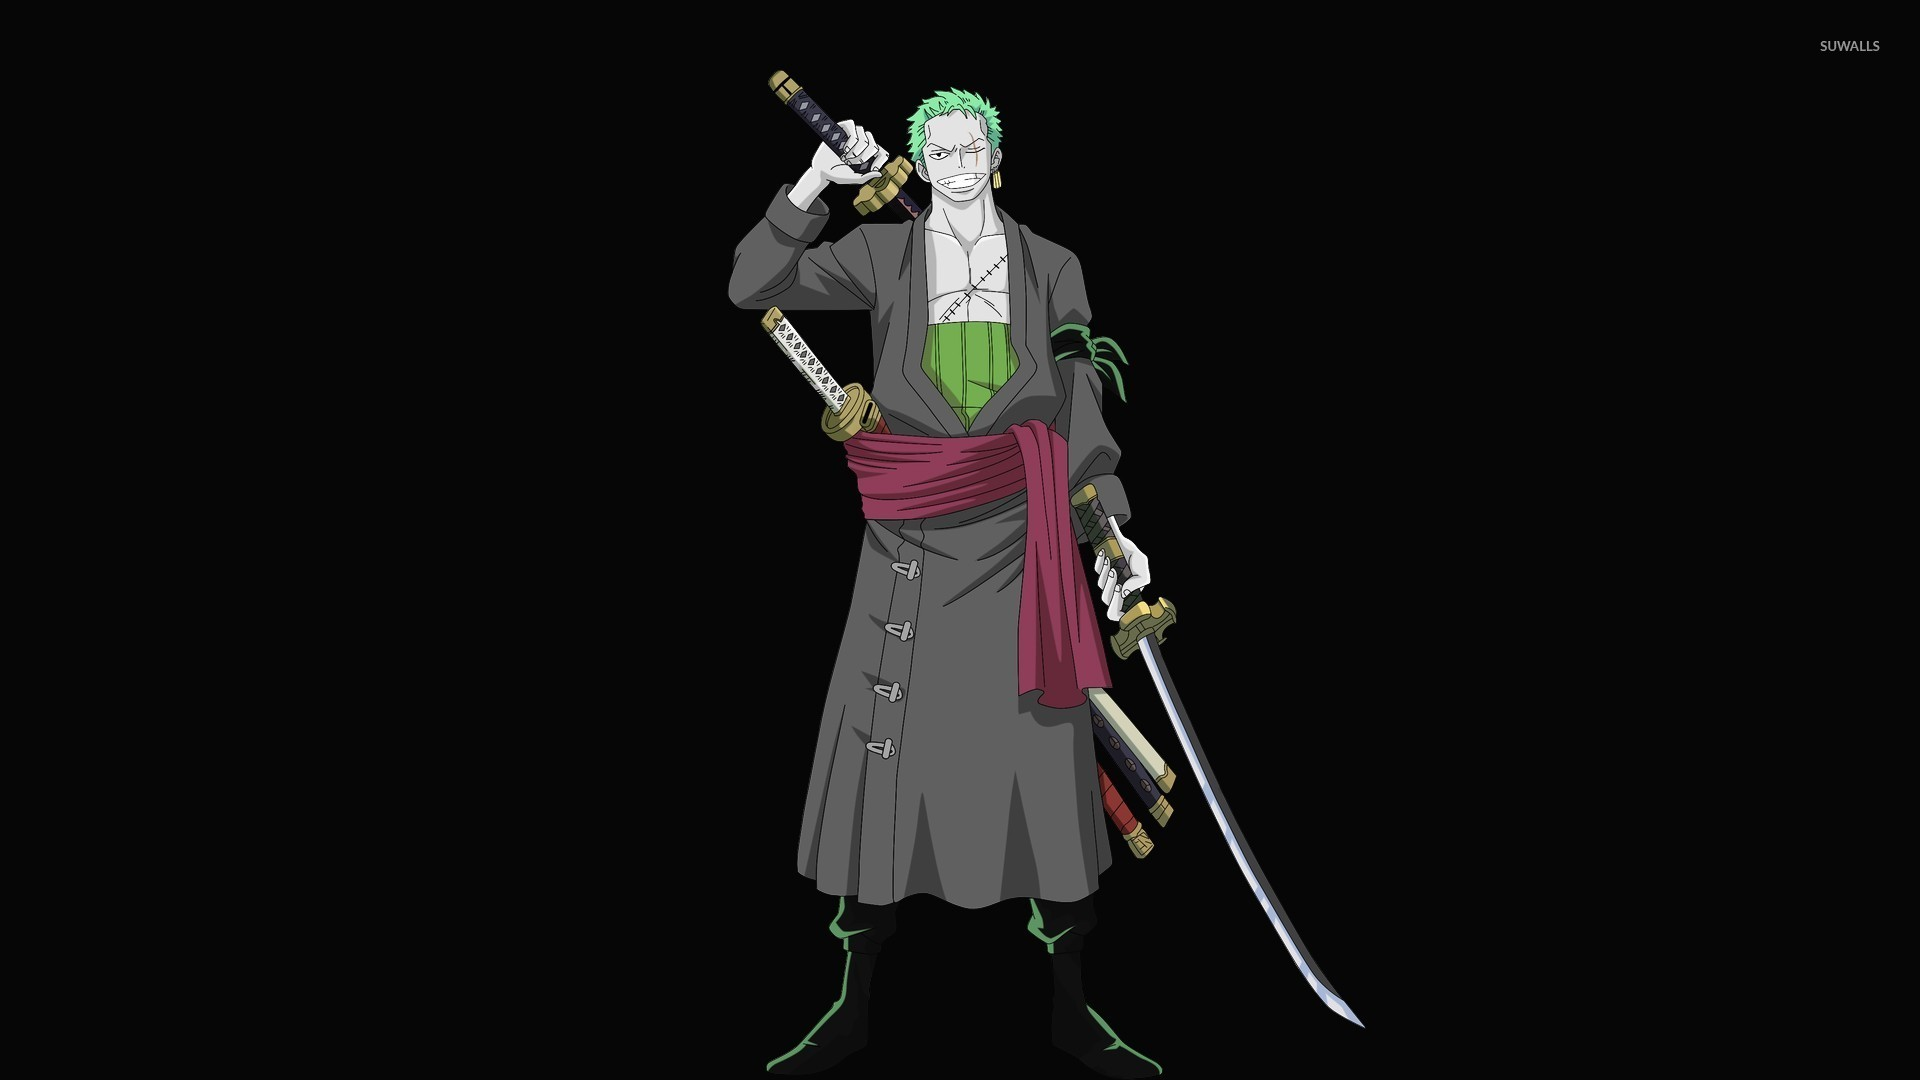 Roronoa Zoro One Piece 3 Wallpaper Anime Wallpapers 42338